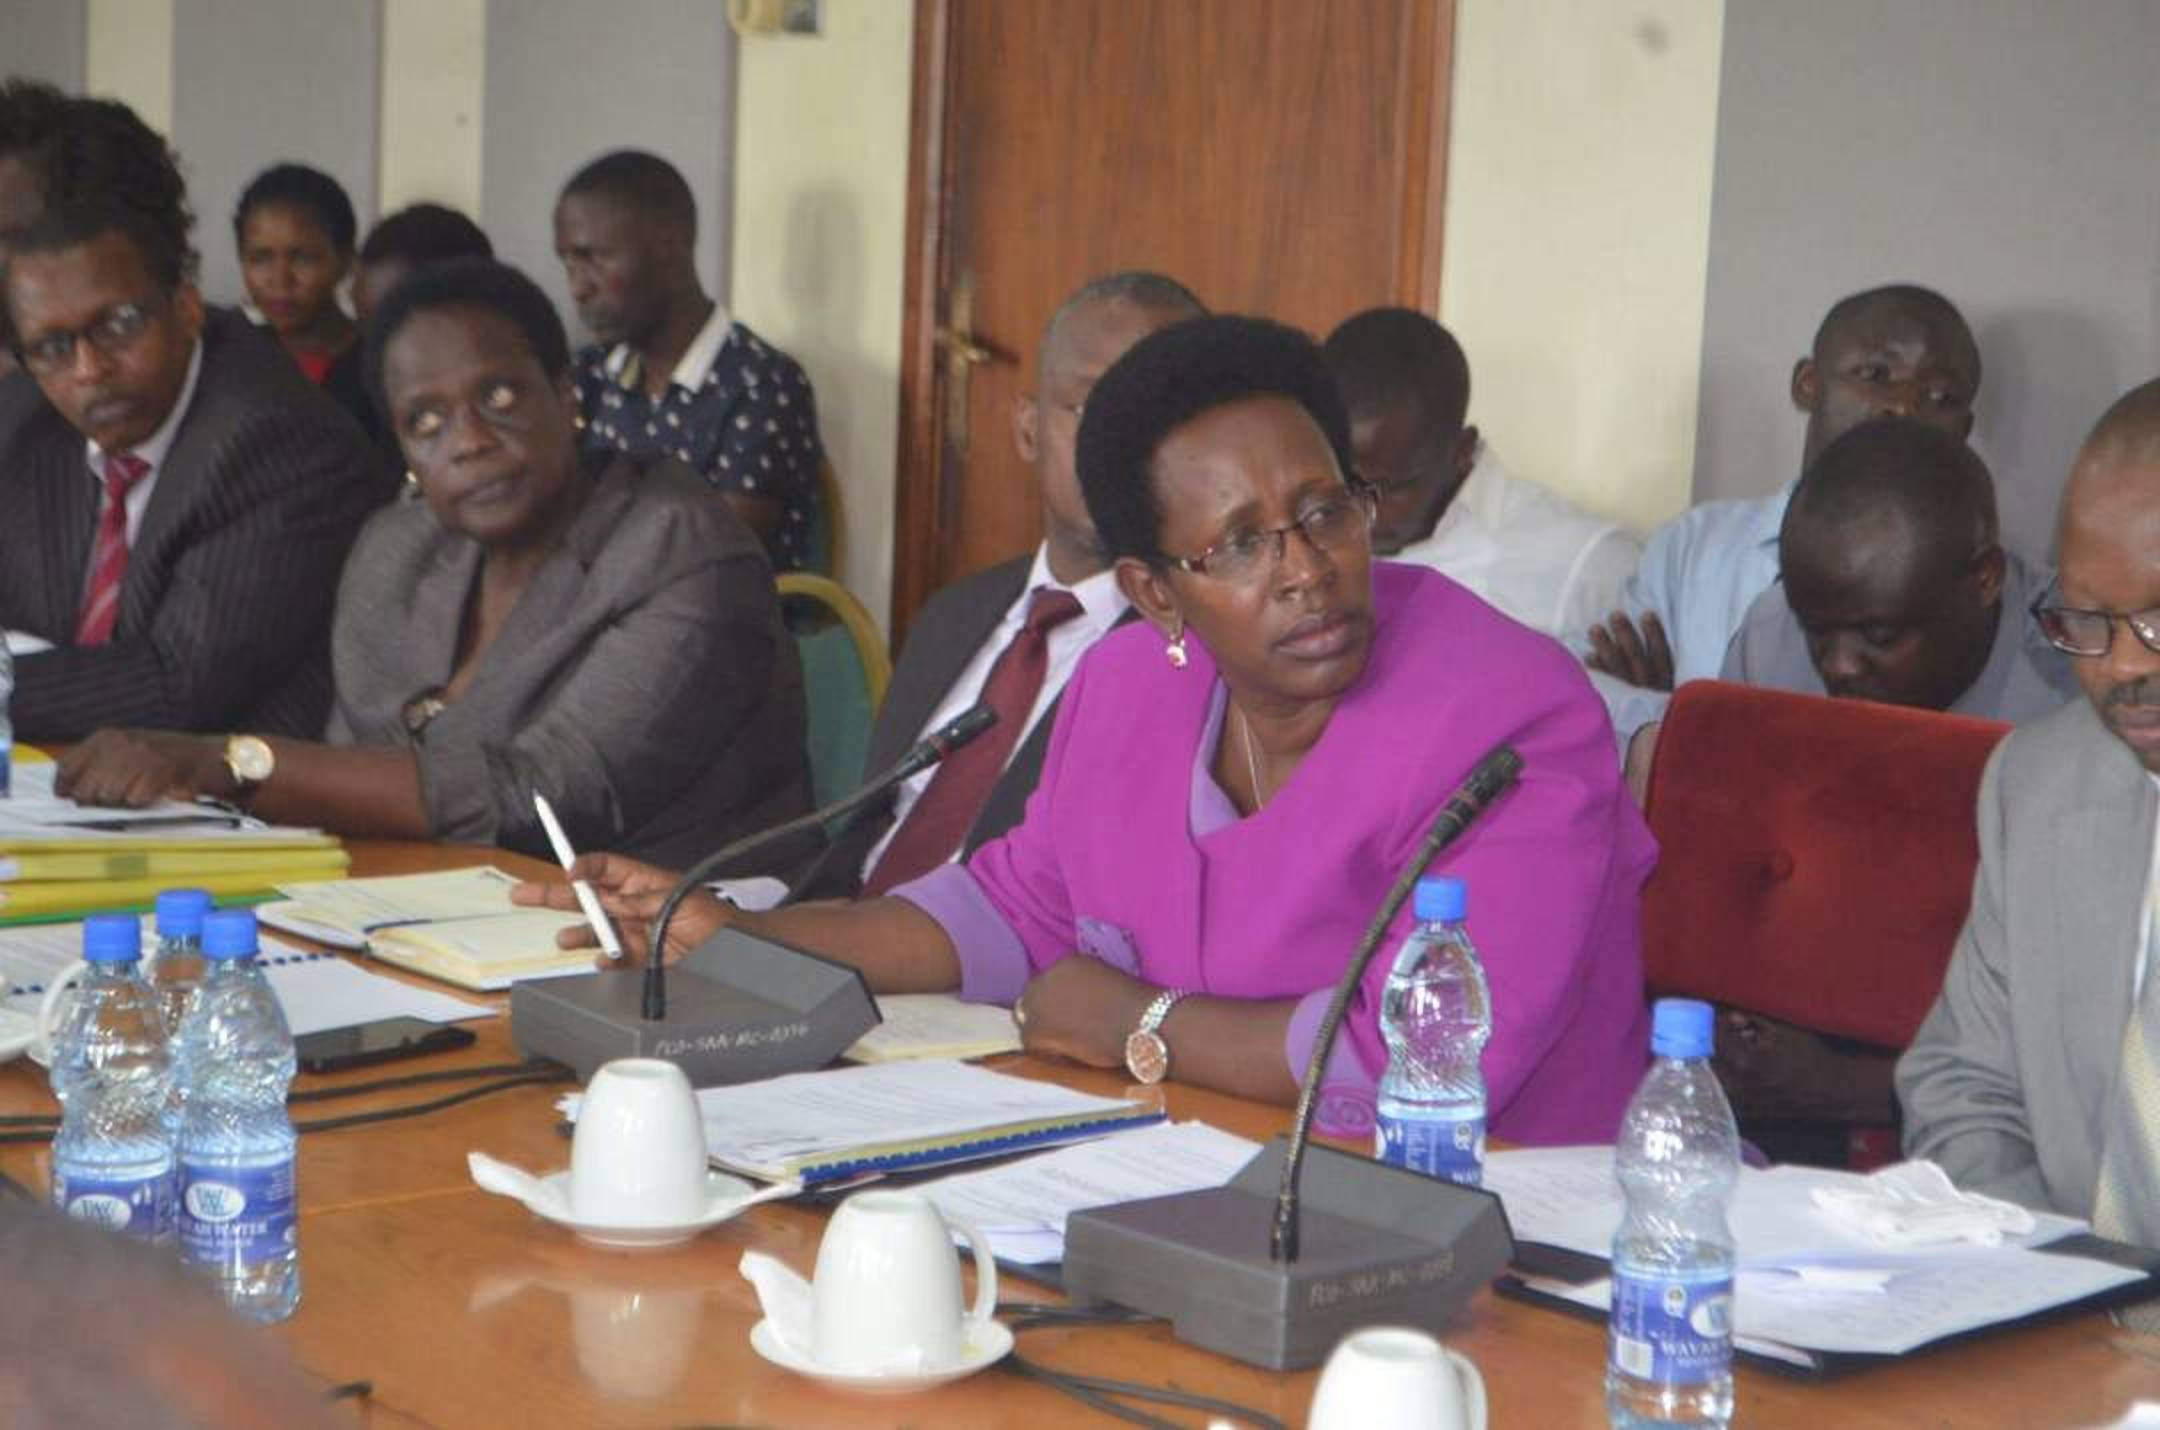 Dr Diana Atwine (in purple), the Permanent Secretary in the Ministry of Health appearing before the Committee of Parliament (COURTESY PHOTO)